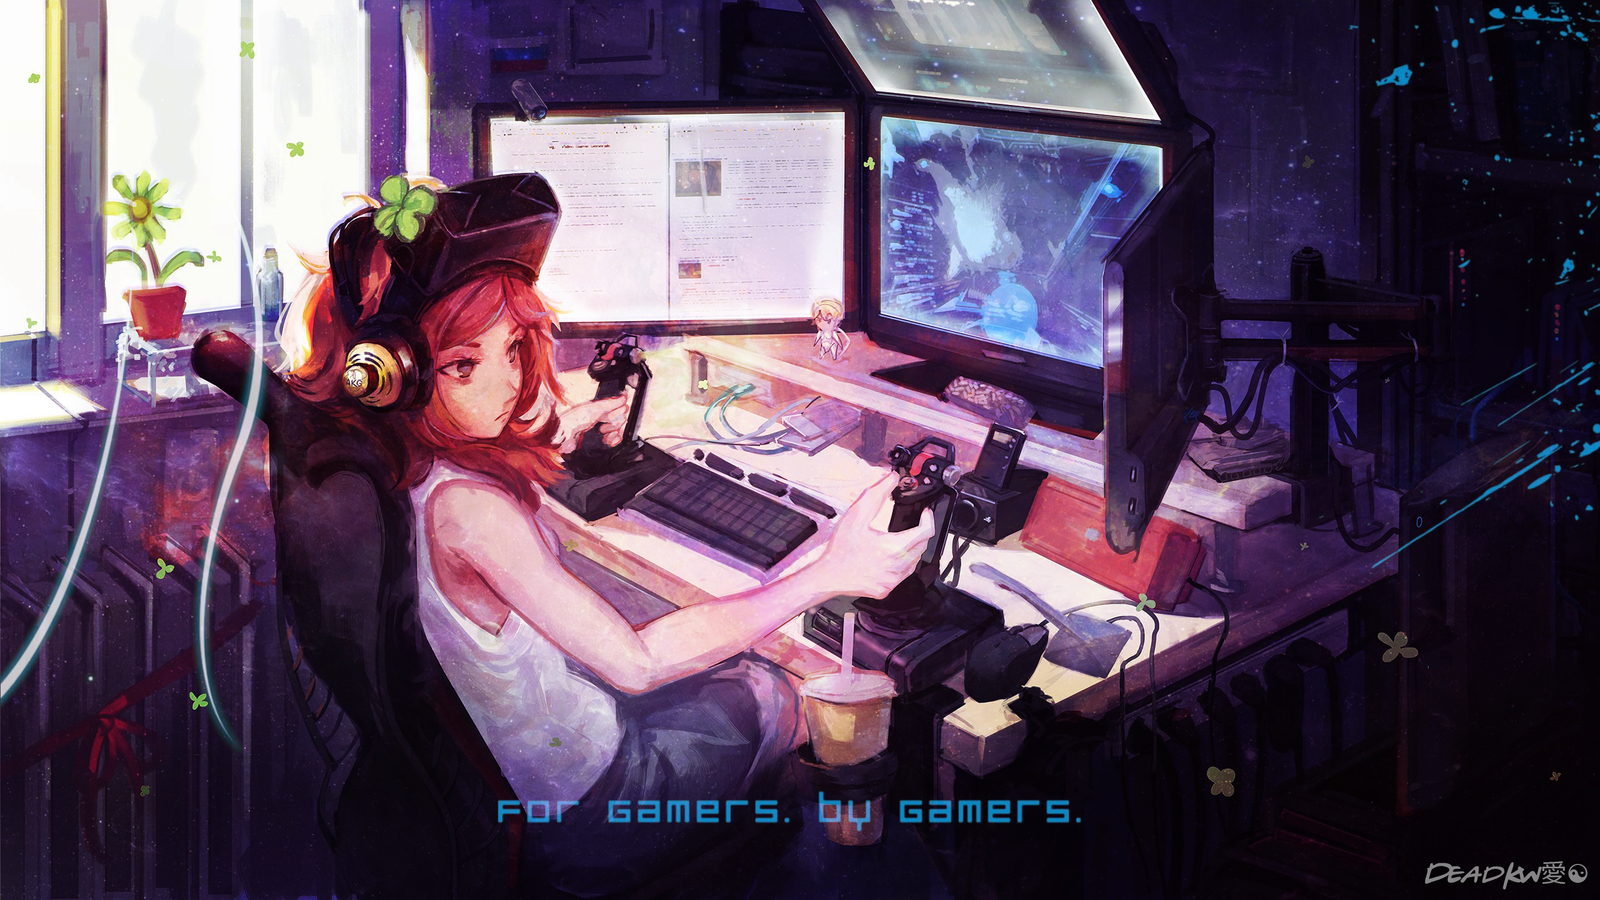 Wallpaper Anime Gamer Hd By Deadkw On Deviantart